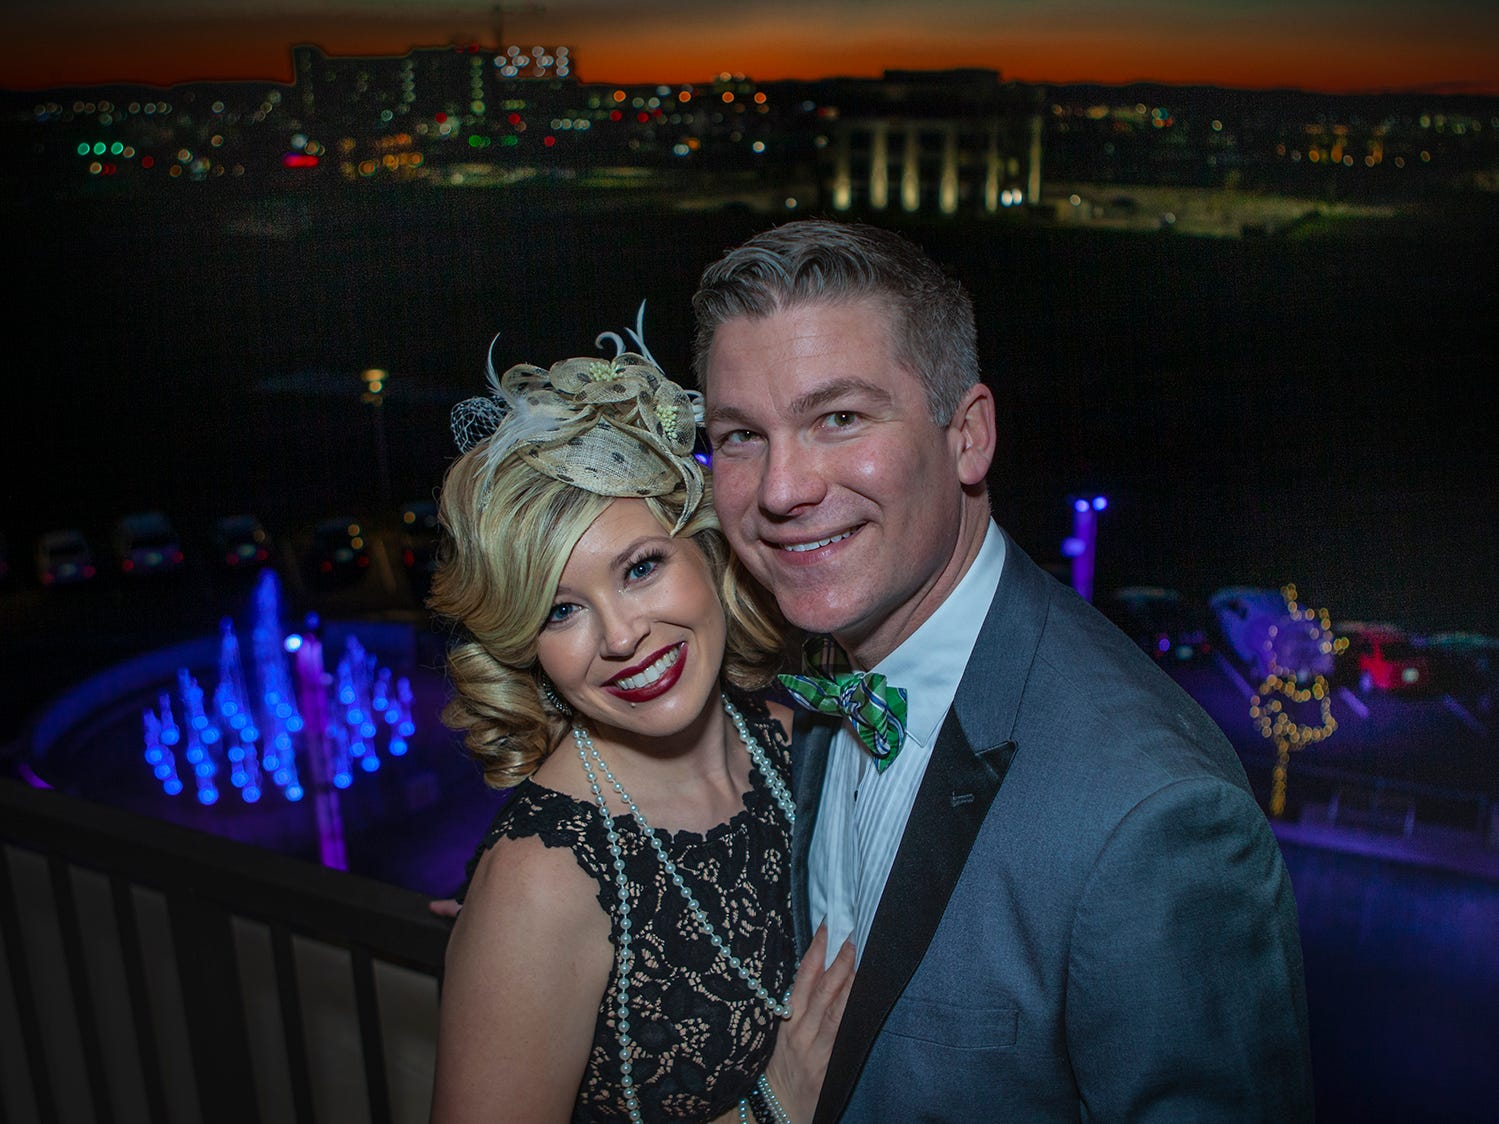 Chelsea and Gabriel Fancher at The Gatsby Party, hosted by the Alzheimer's Association at The View at Fountains Saturday, March 16, 2019.